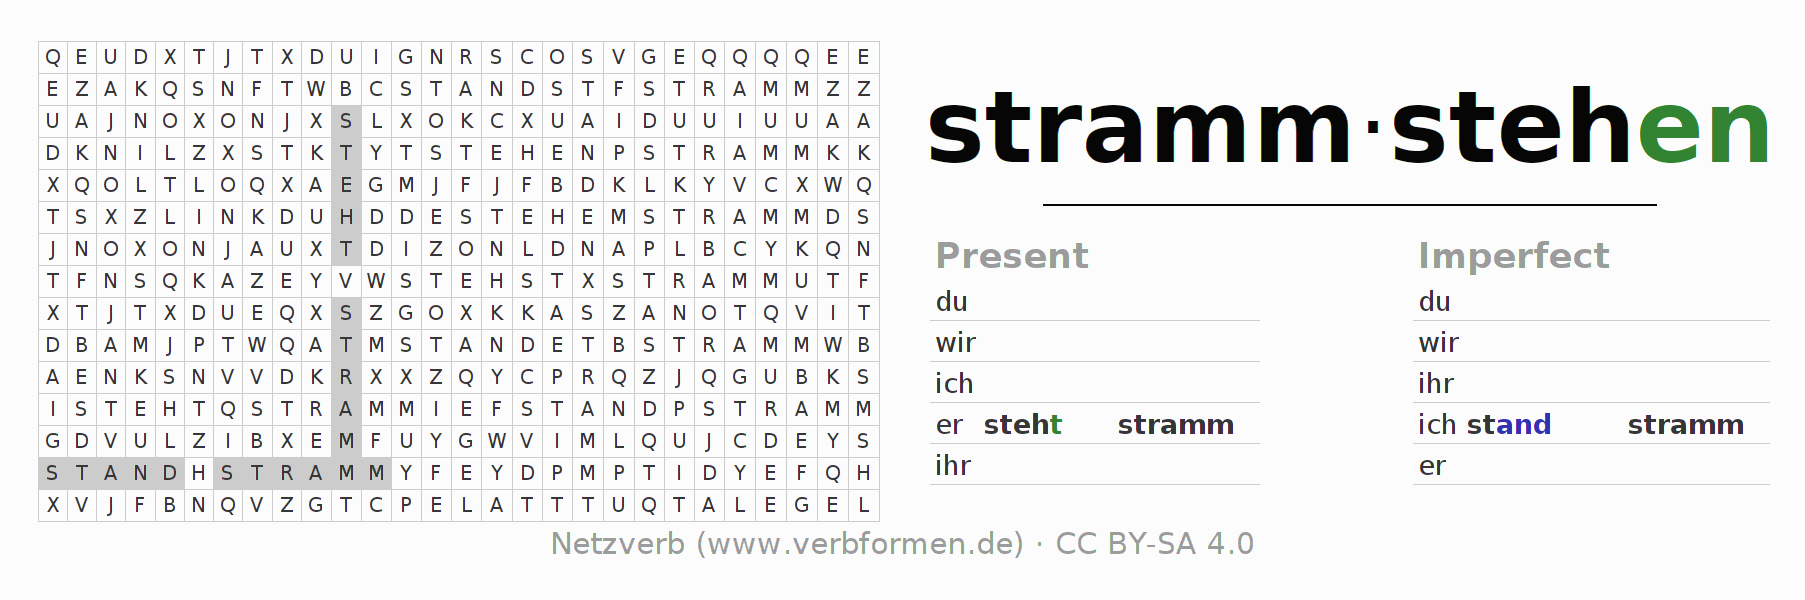 Word search puzzle for the conjugation of the verb strammstehen (hat)